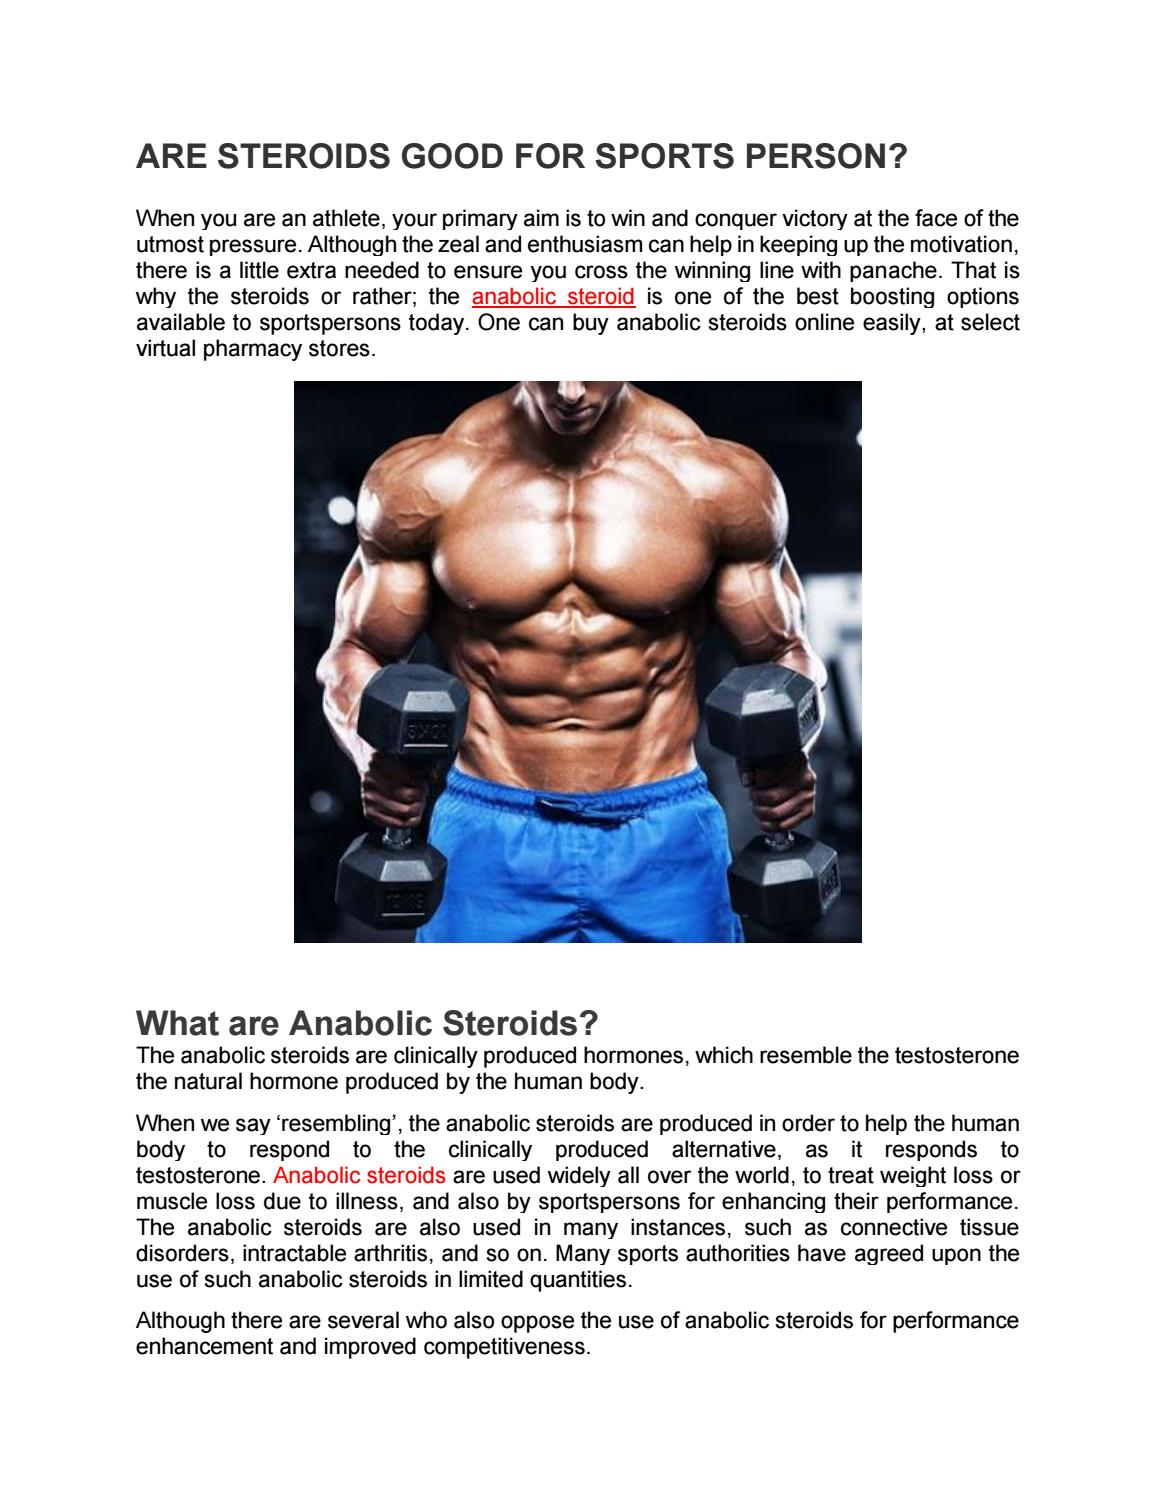 Why steroids are good for sports windstone gold dragon hatcing